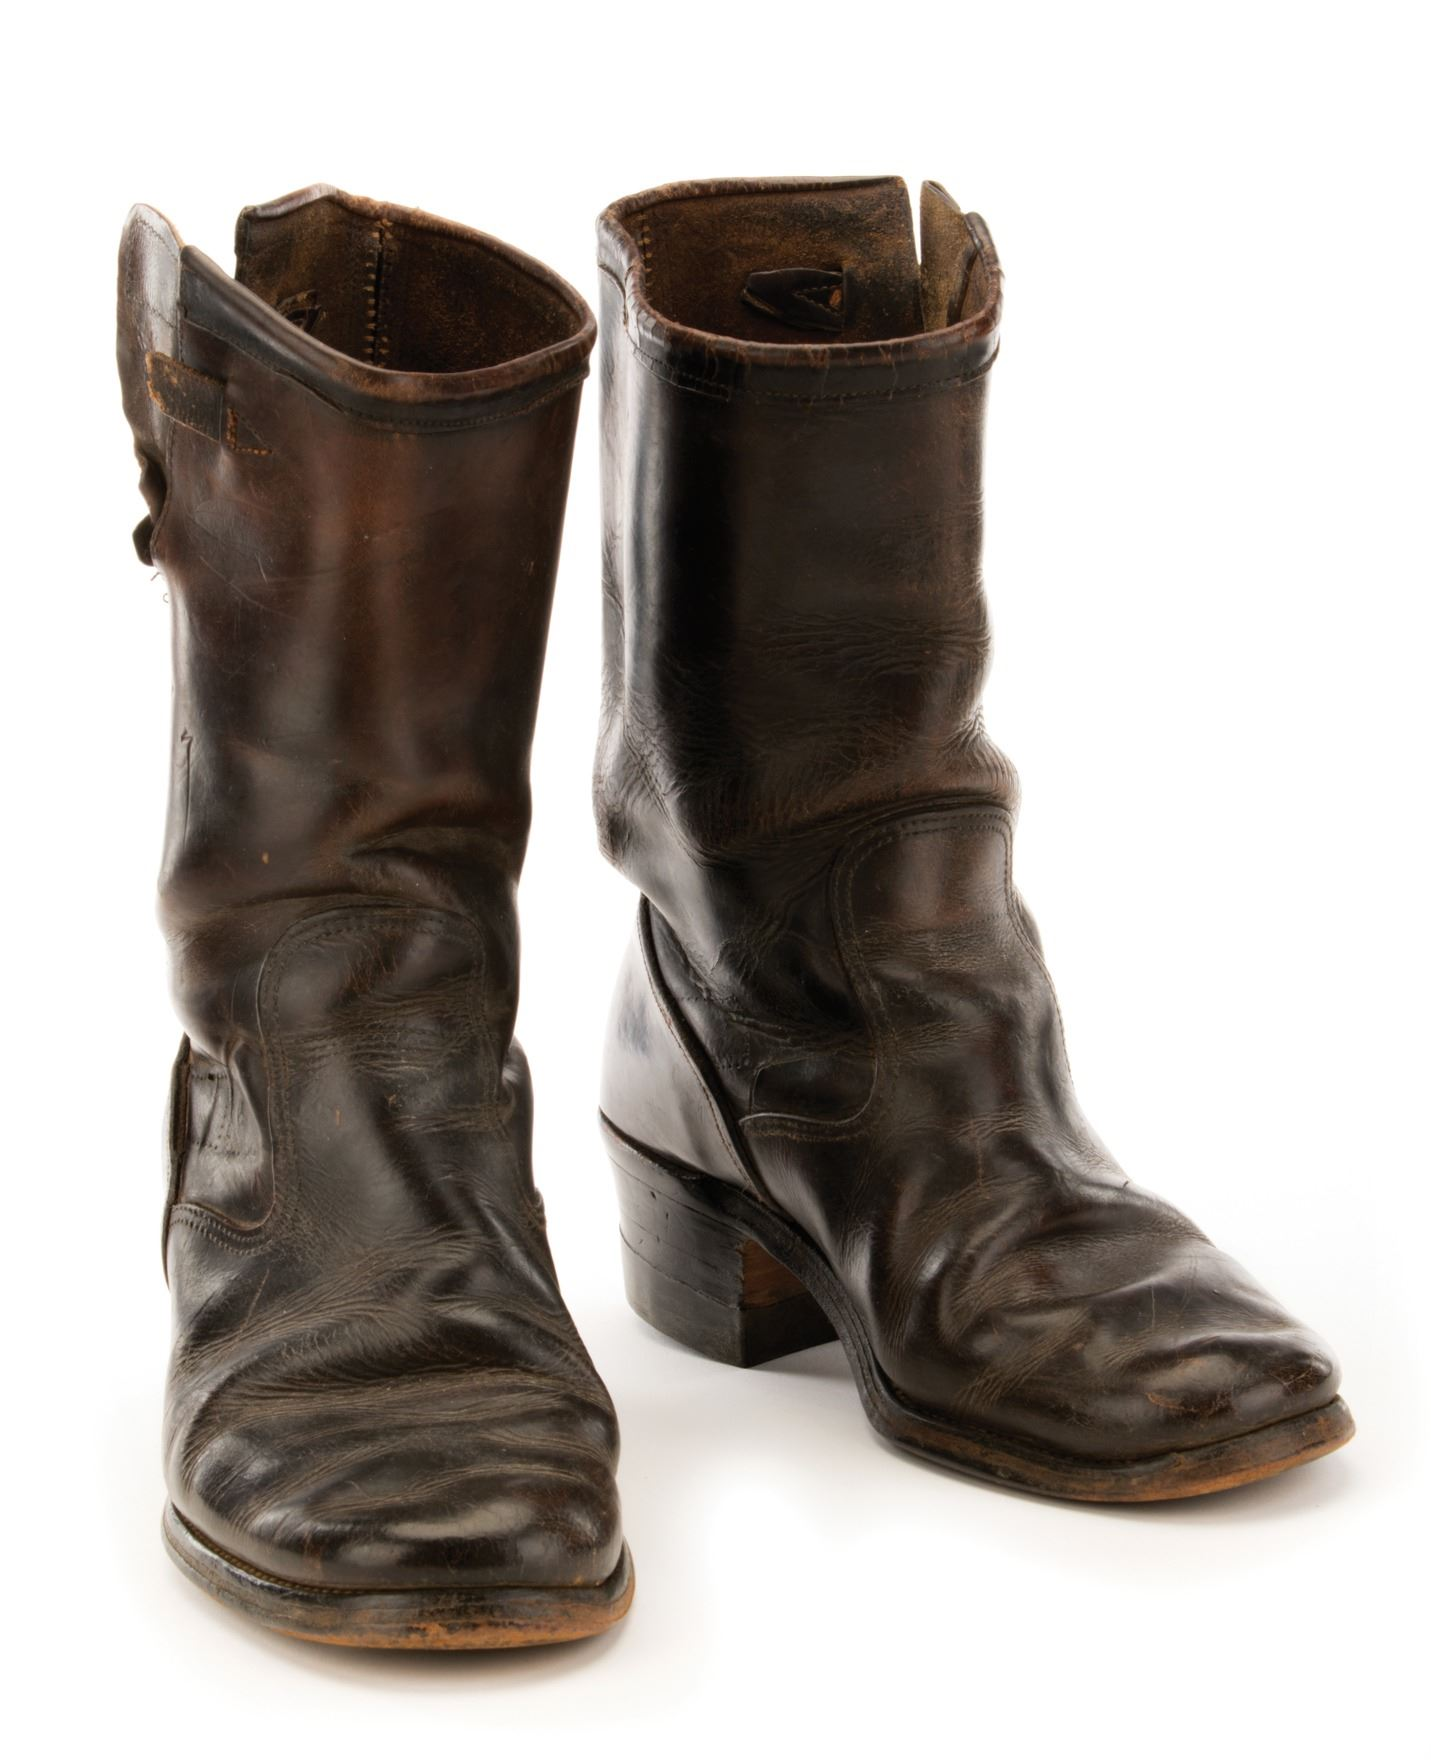 e0d543d72e4 James Dean worn and weathered motorcycle boots.